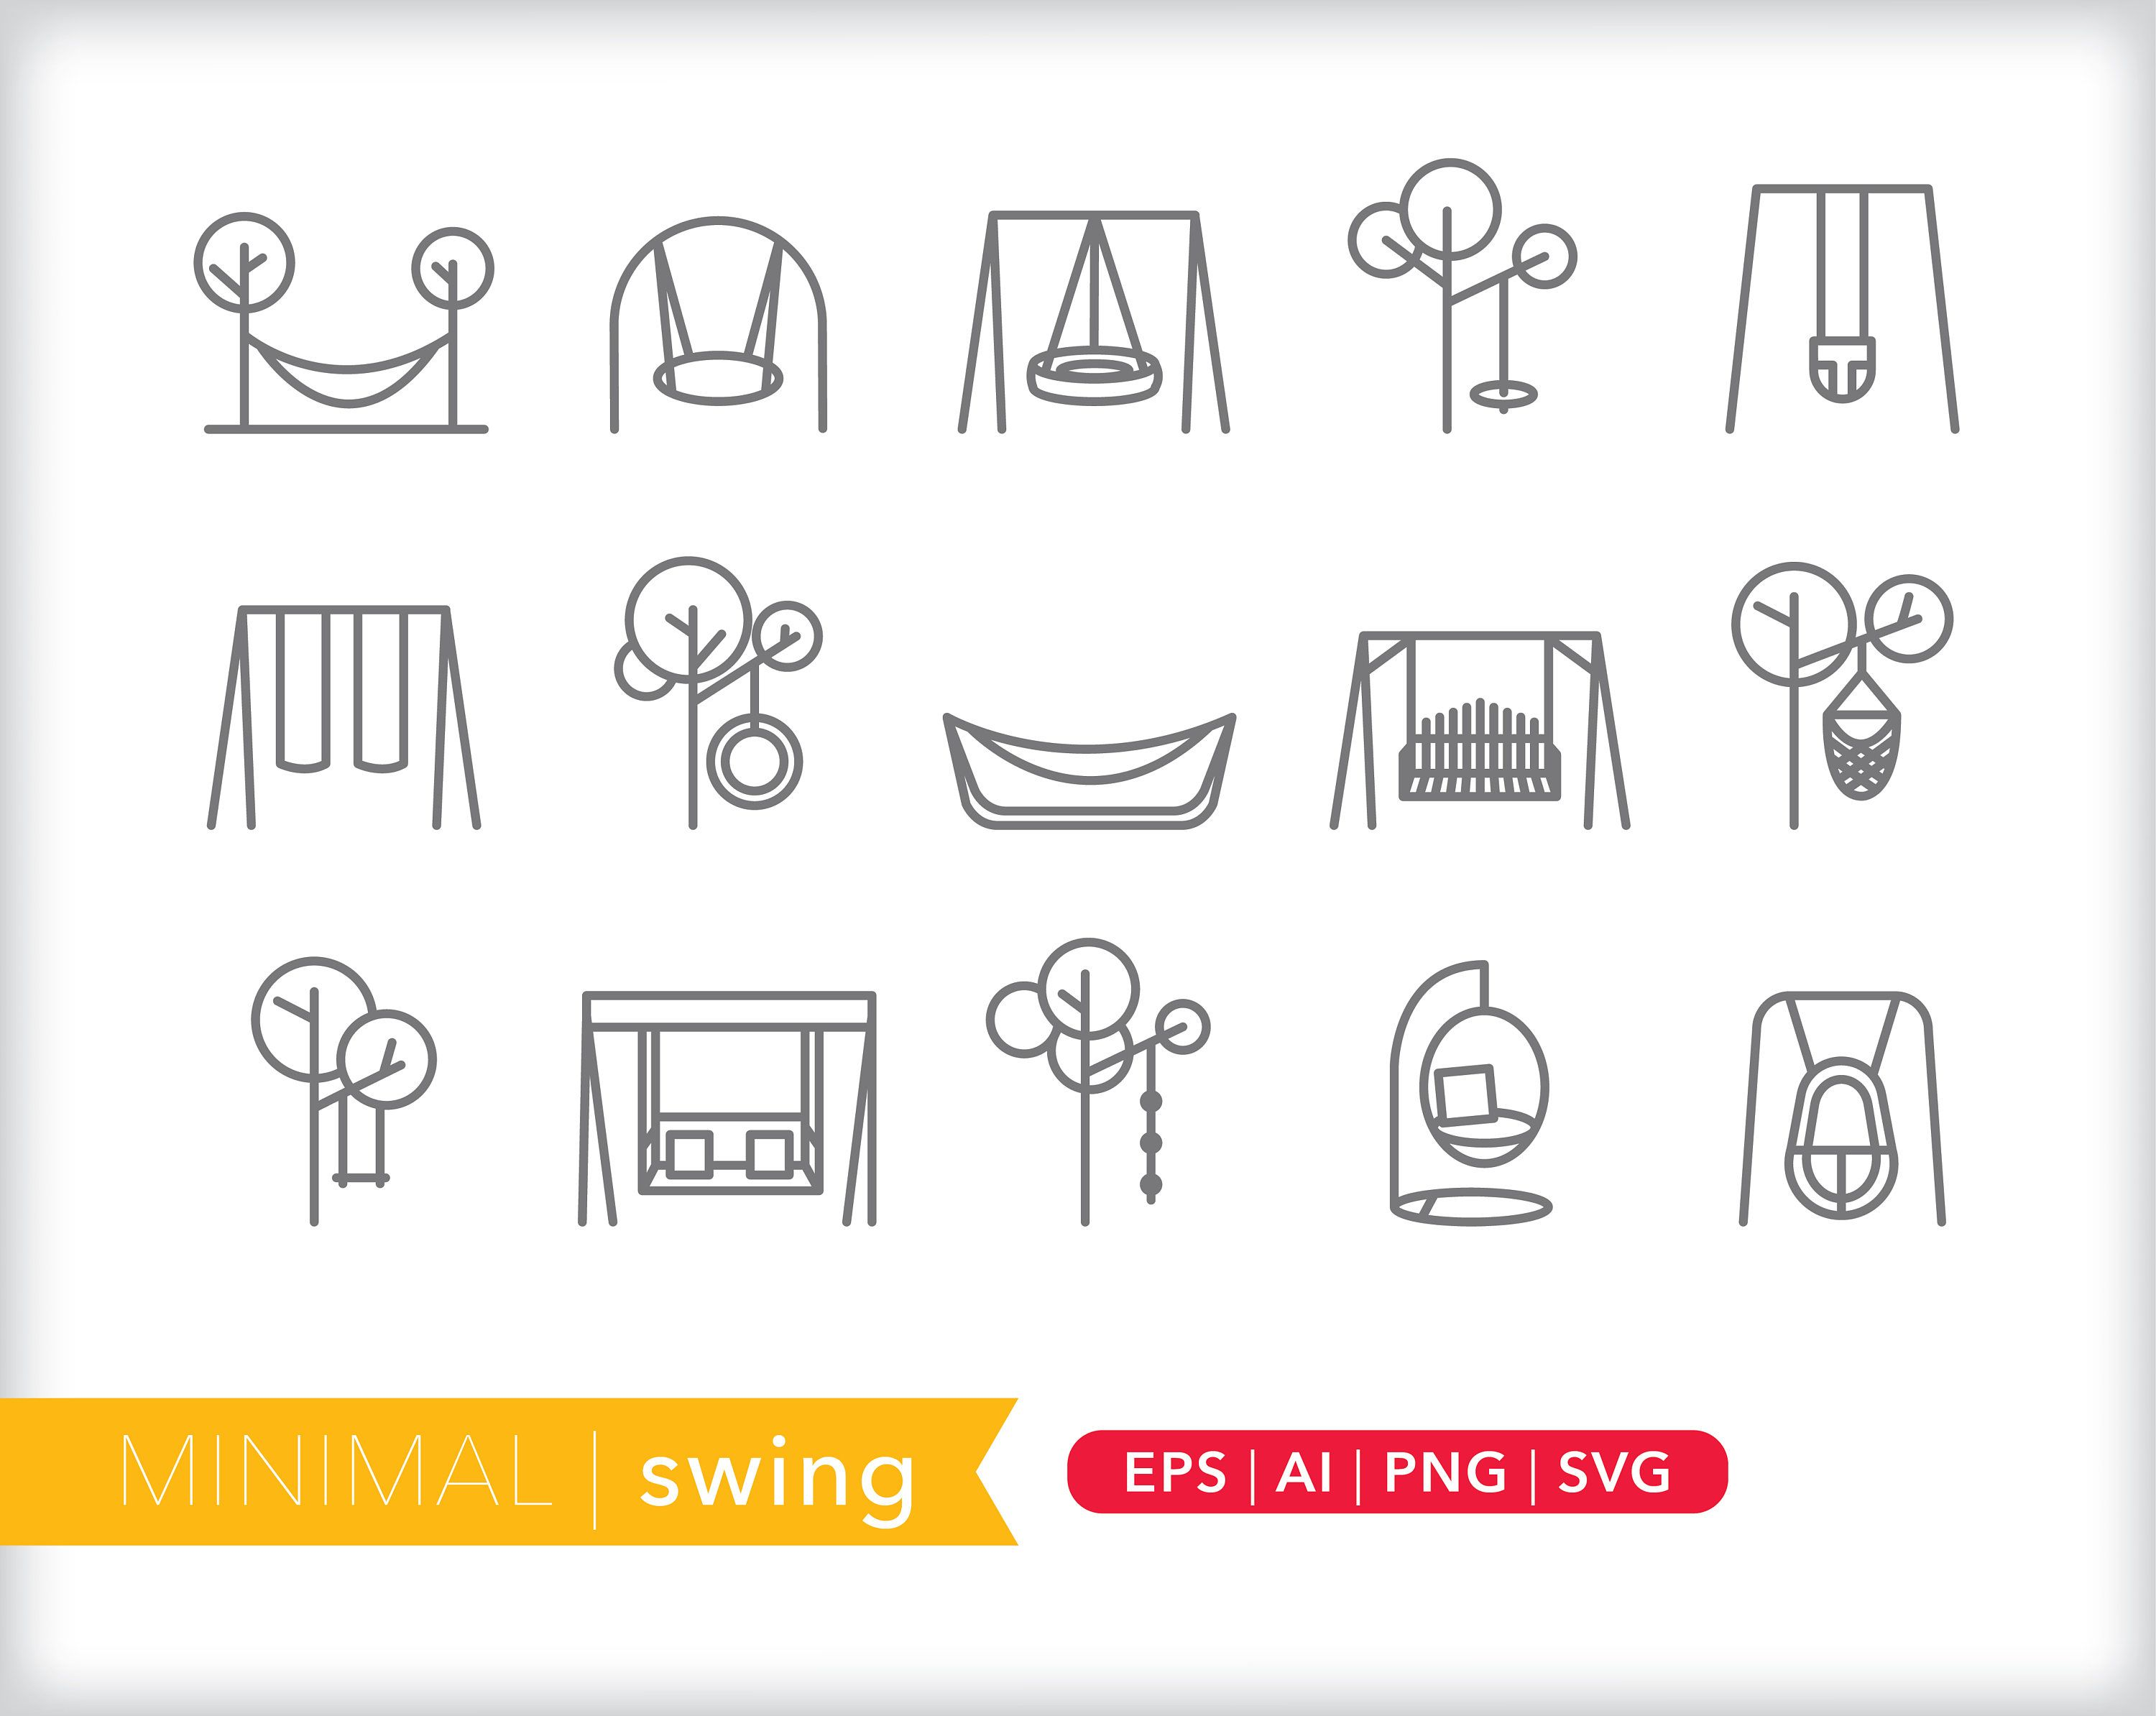 Swing Icons Park Icons Eps Ai Png Digital Download For Etsy Icon Parking Icon Cute Designs To Draw